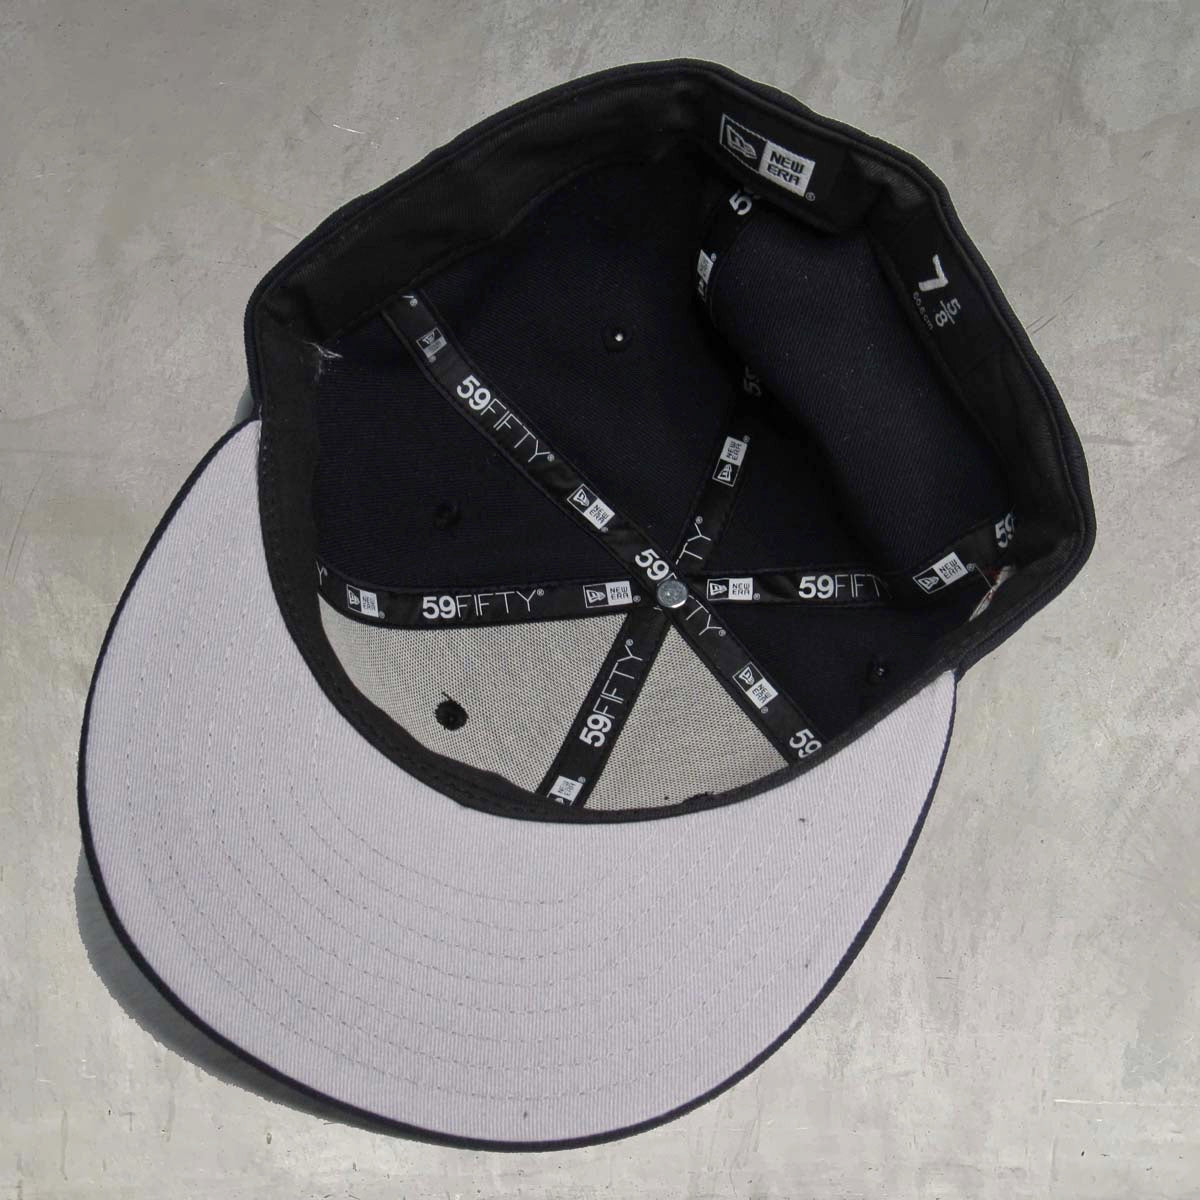 12:13 World Series Fitted Hat- Black